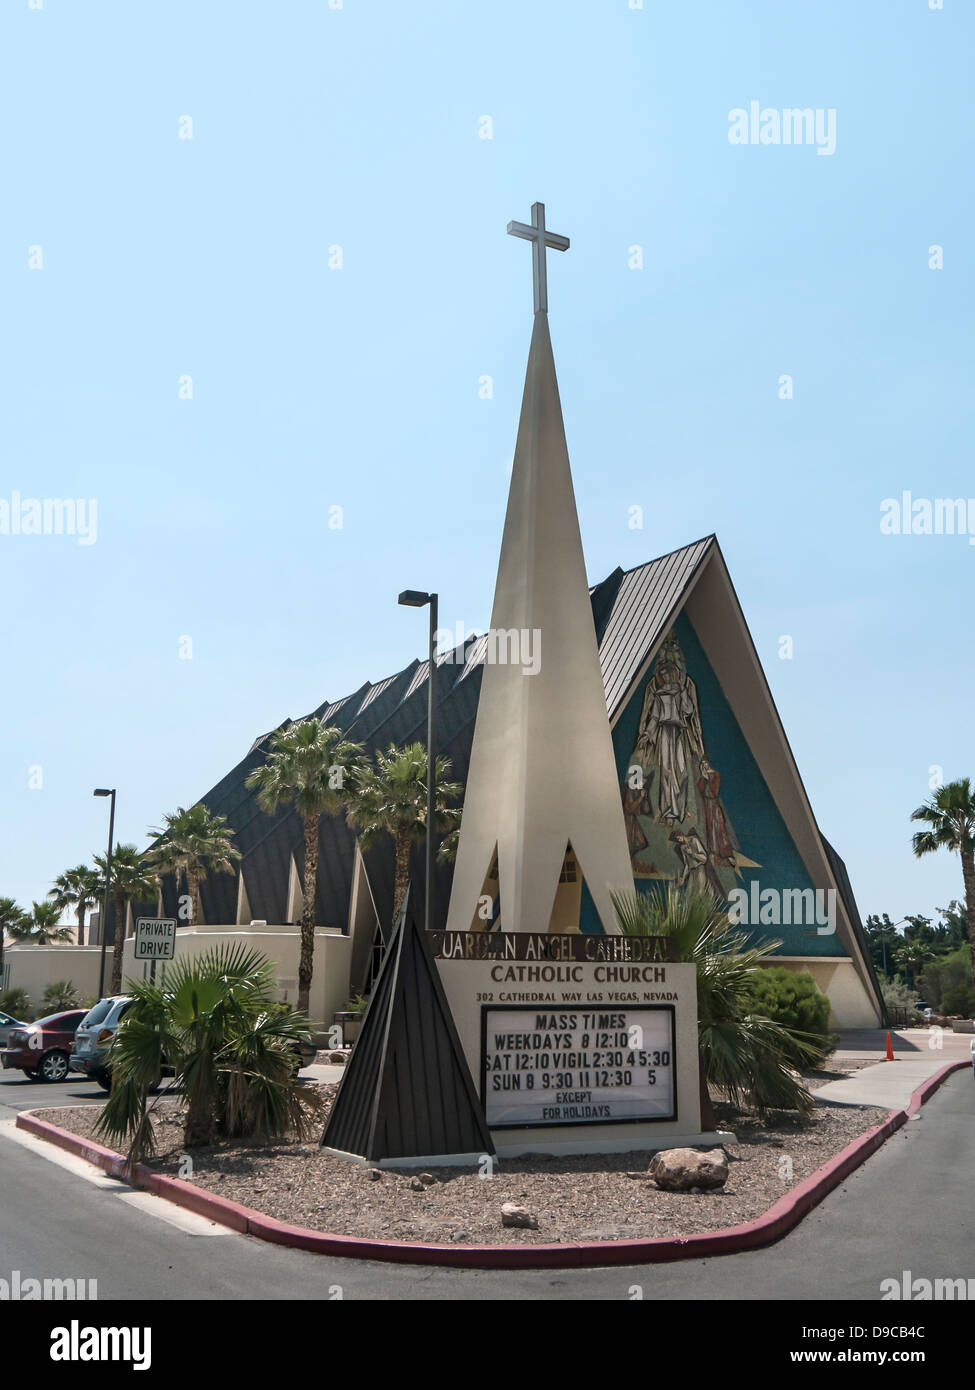 Guardian Angel Cathedral Catholic Church in USA Stock Photo